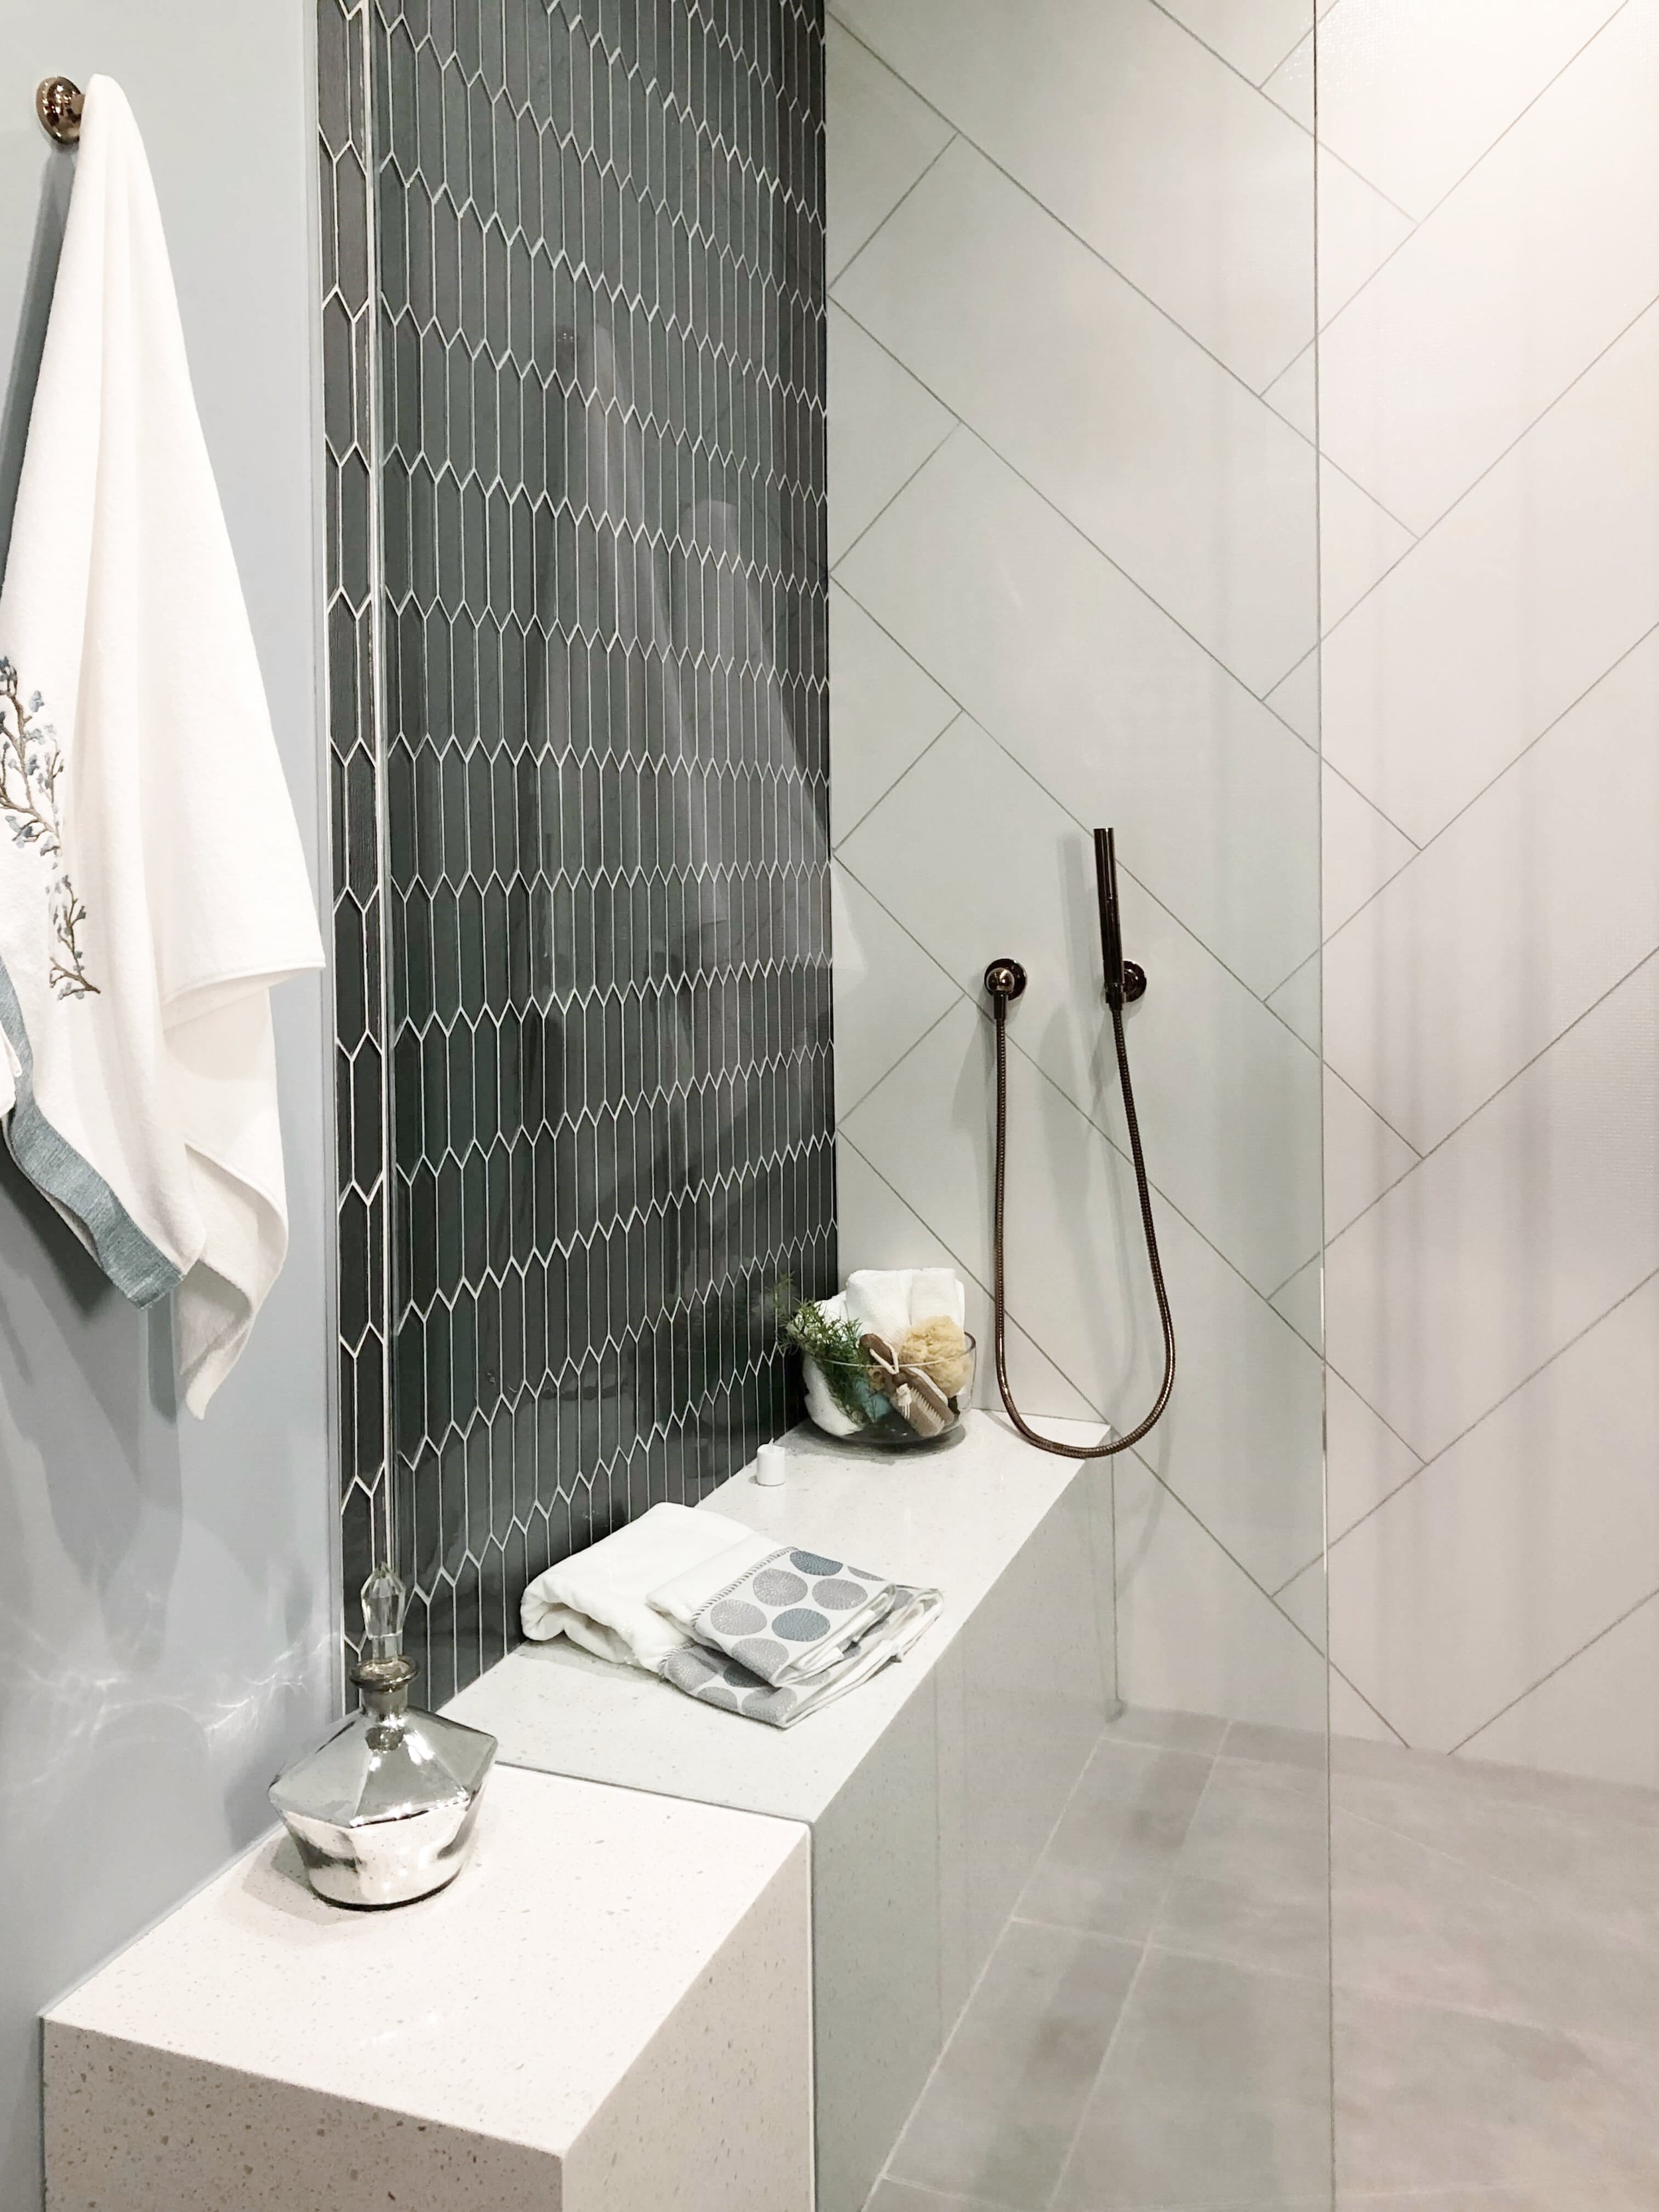 Shower with extended bench |  The New American Home 2019